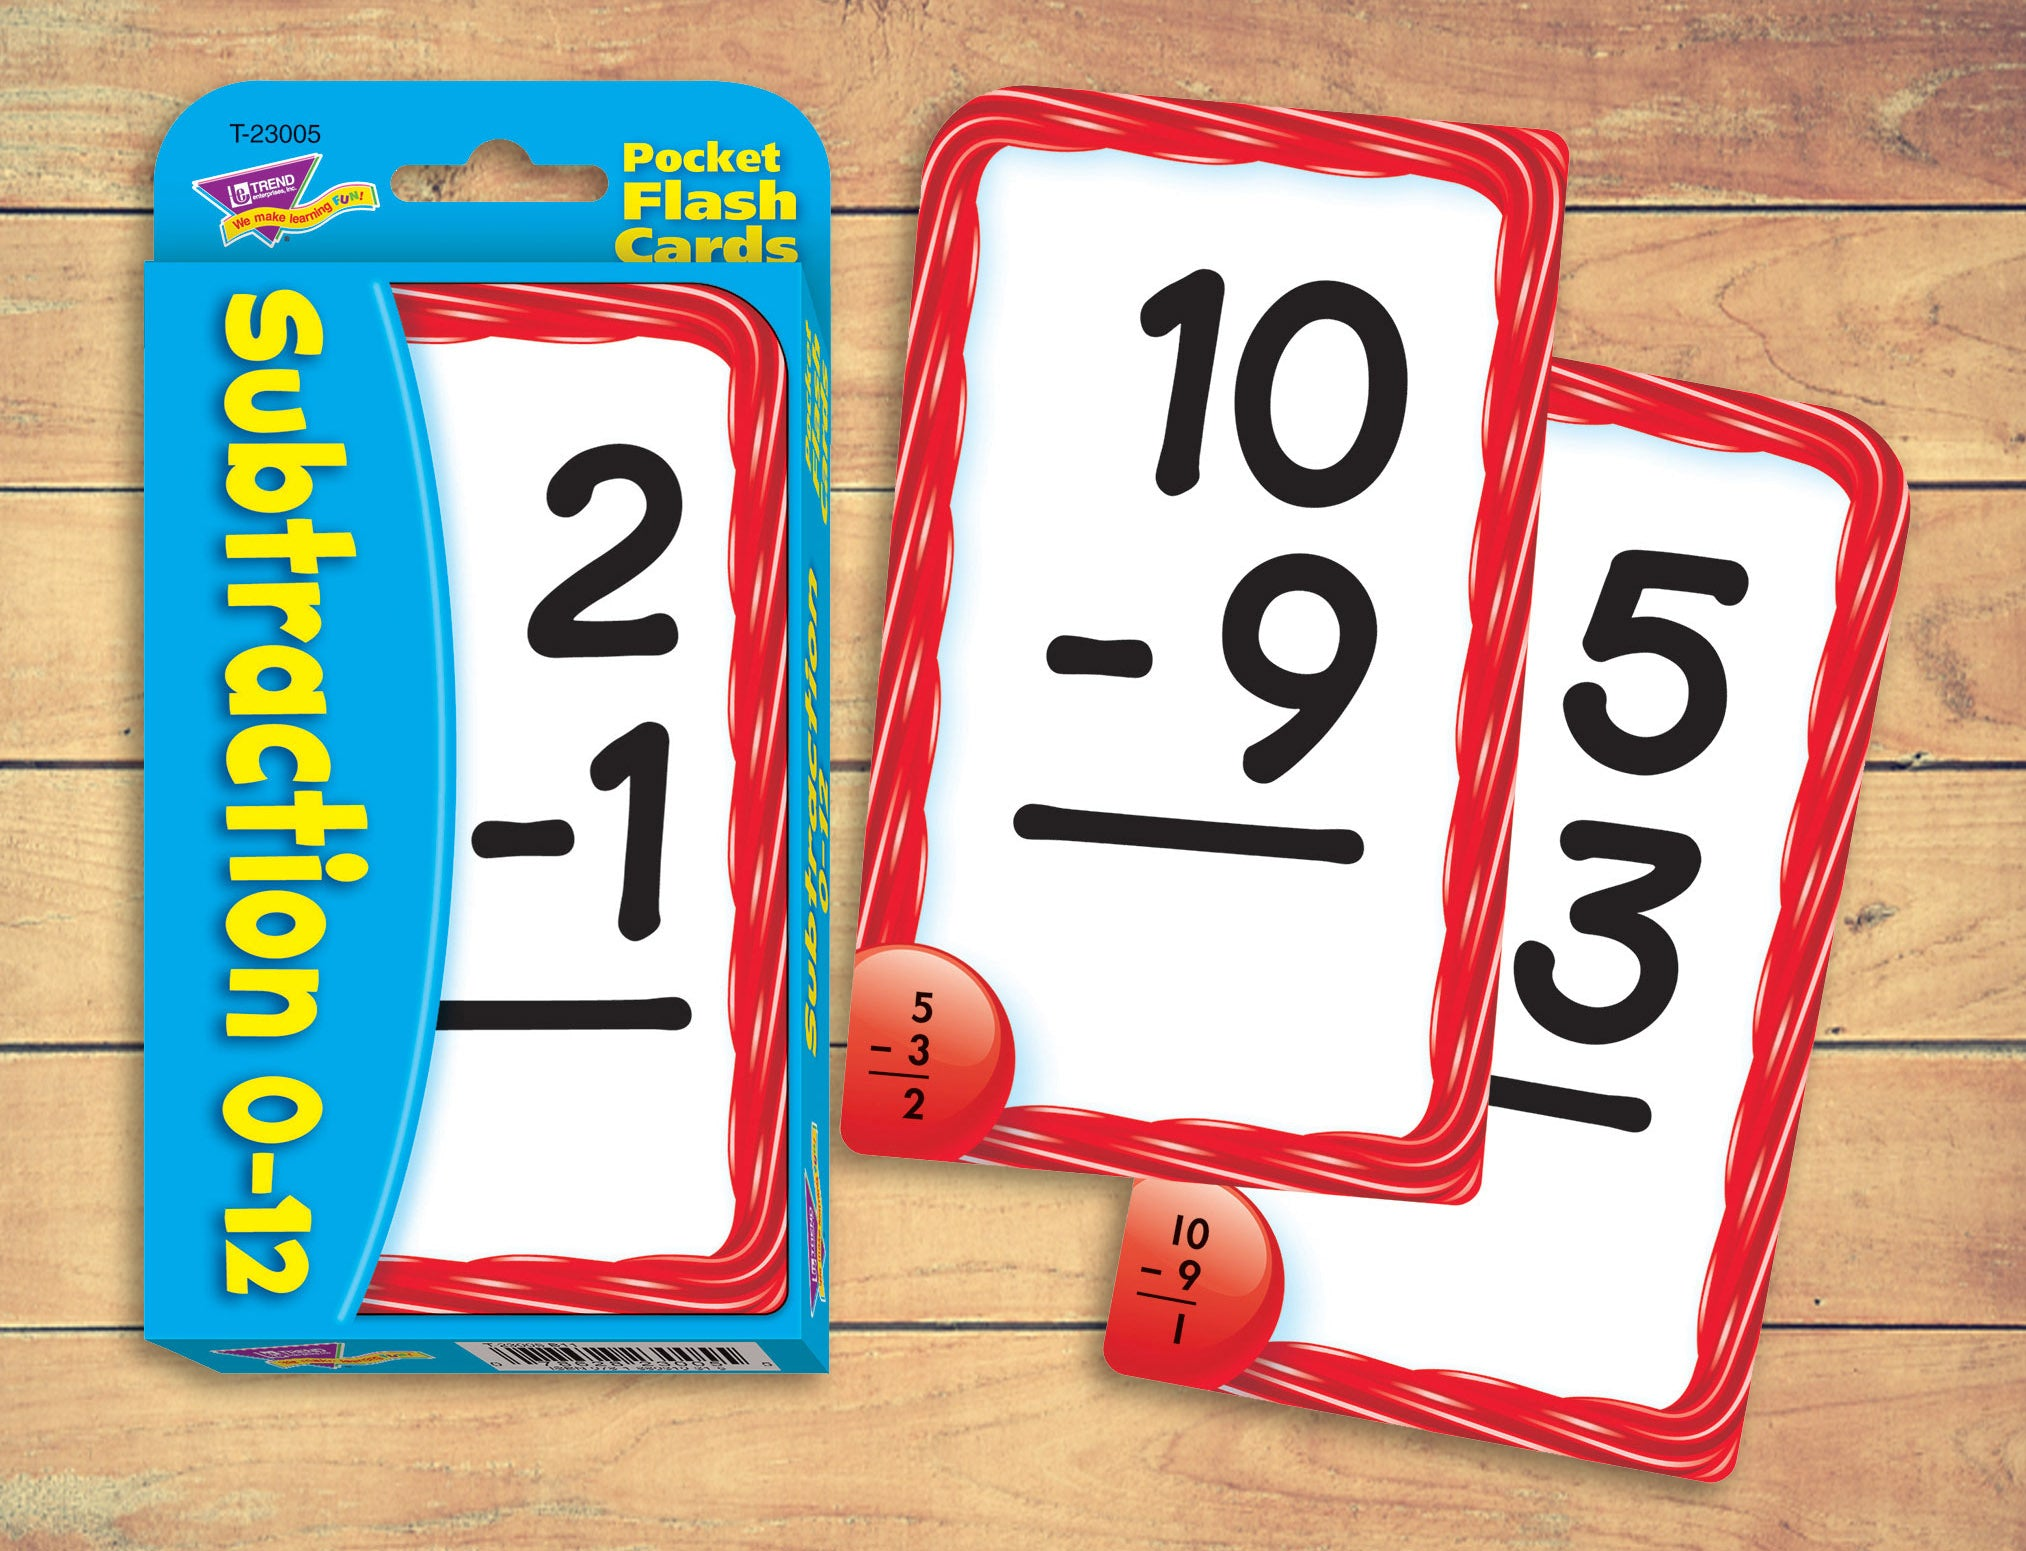 Subtraction flash cards for at home distance learning school teacher supplies made in USA